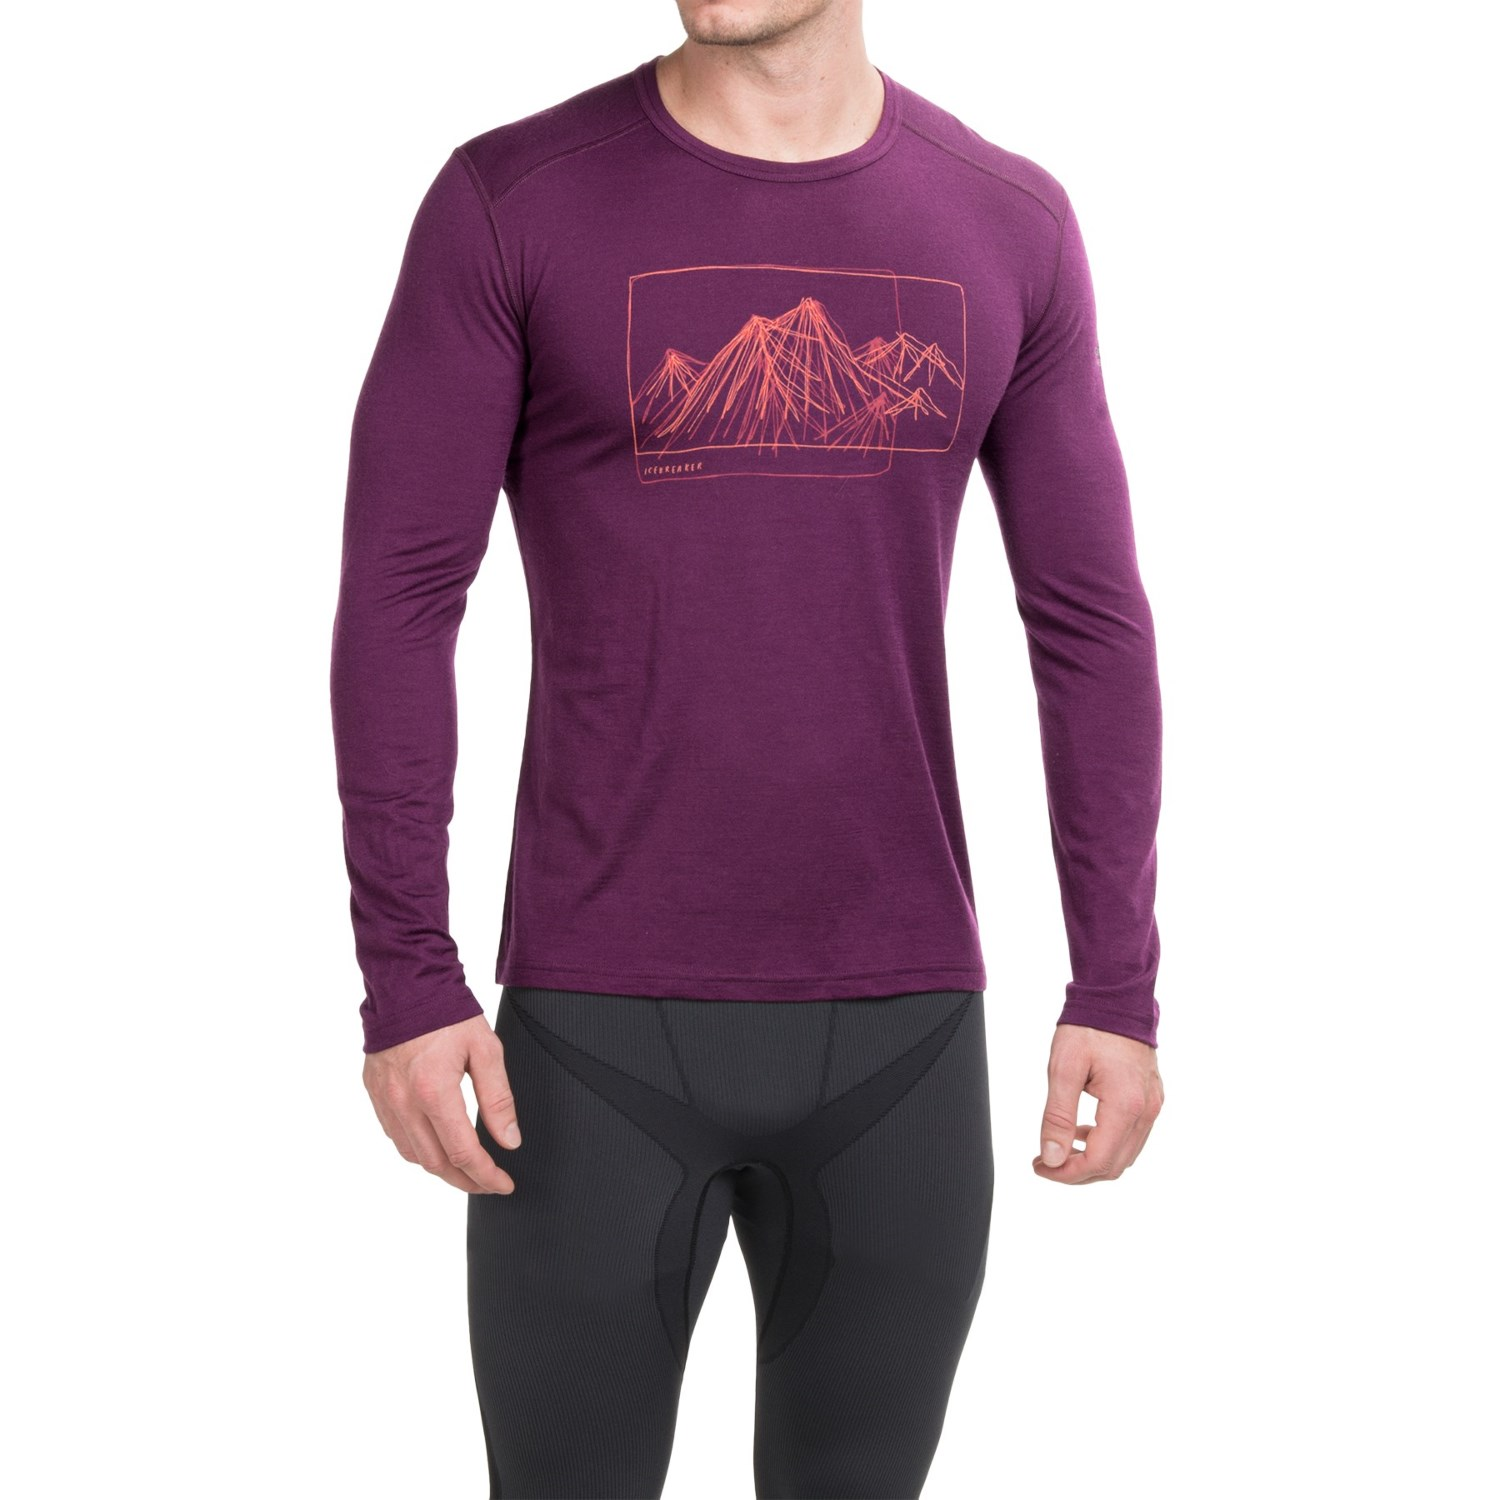 icebreaker bodyfit 200 oasis aoraki base layer top for